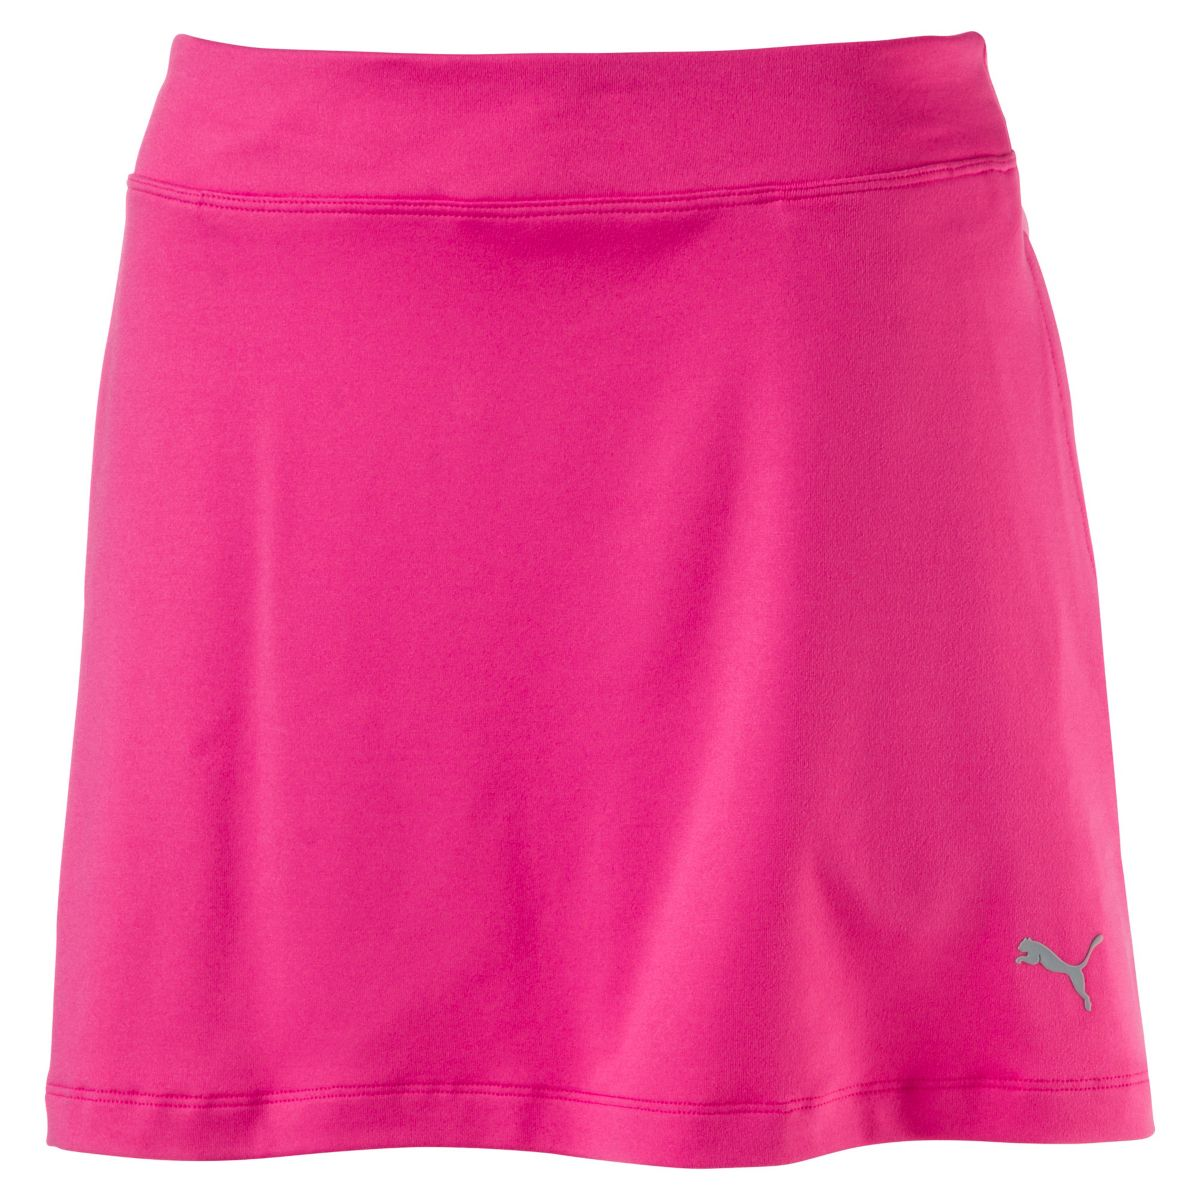 Puma Women's 2017 Solid Knit Golf Skort Pink